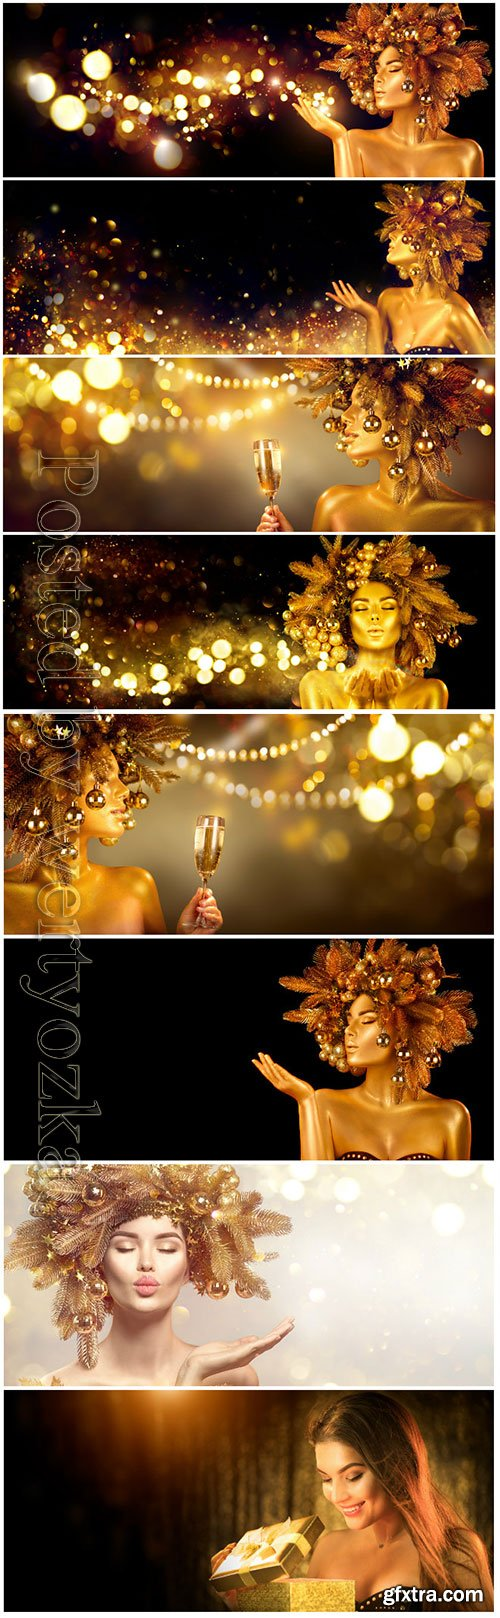 Beauty glamour golden Christmas woman celebrating